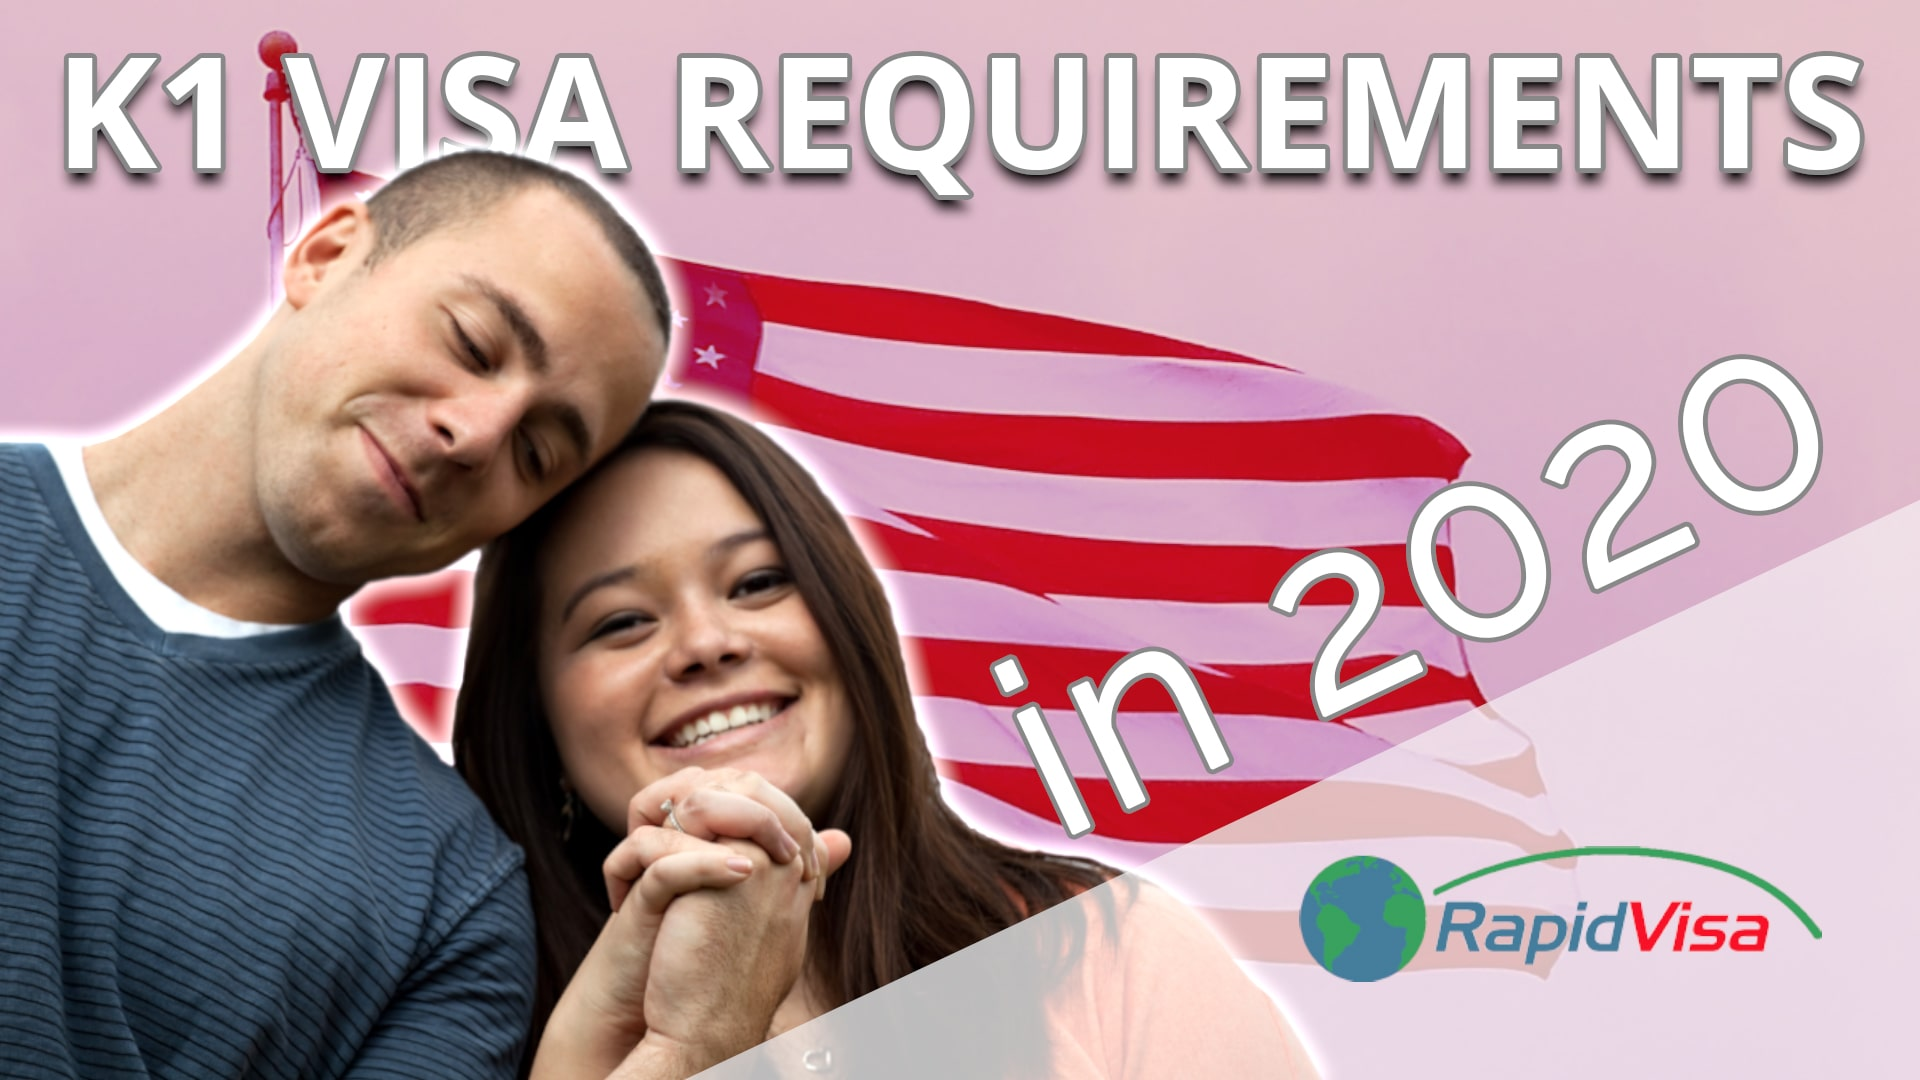 K1 Visa Requirements in 2020